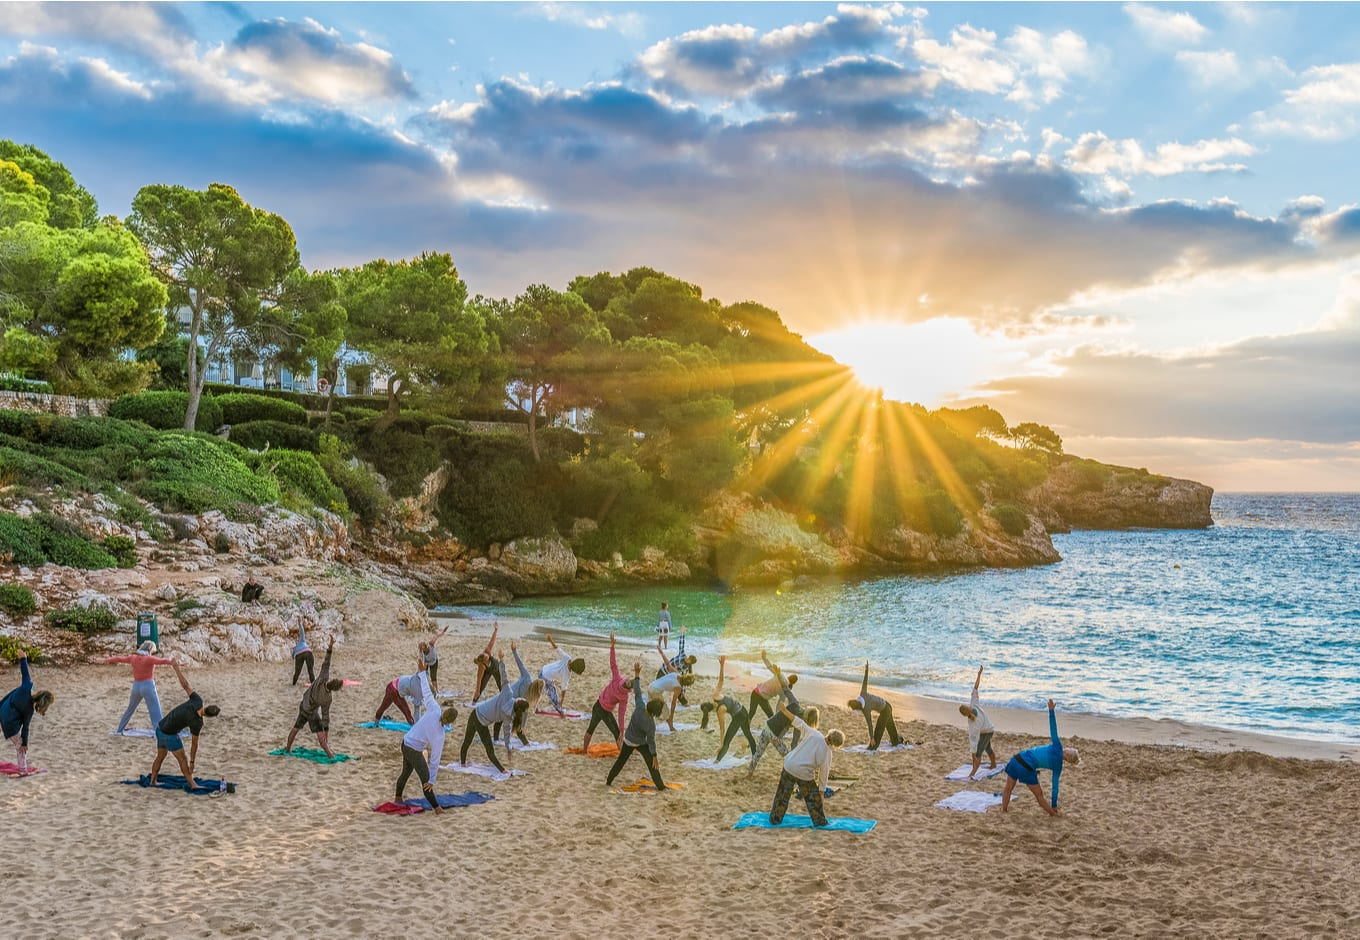 People practicing yoga at sunset time in Palma Mallorca Island, Spain